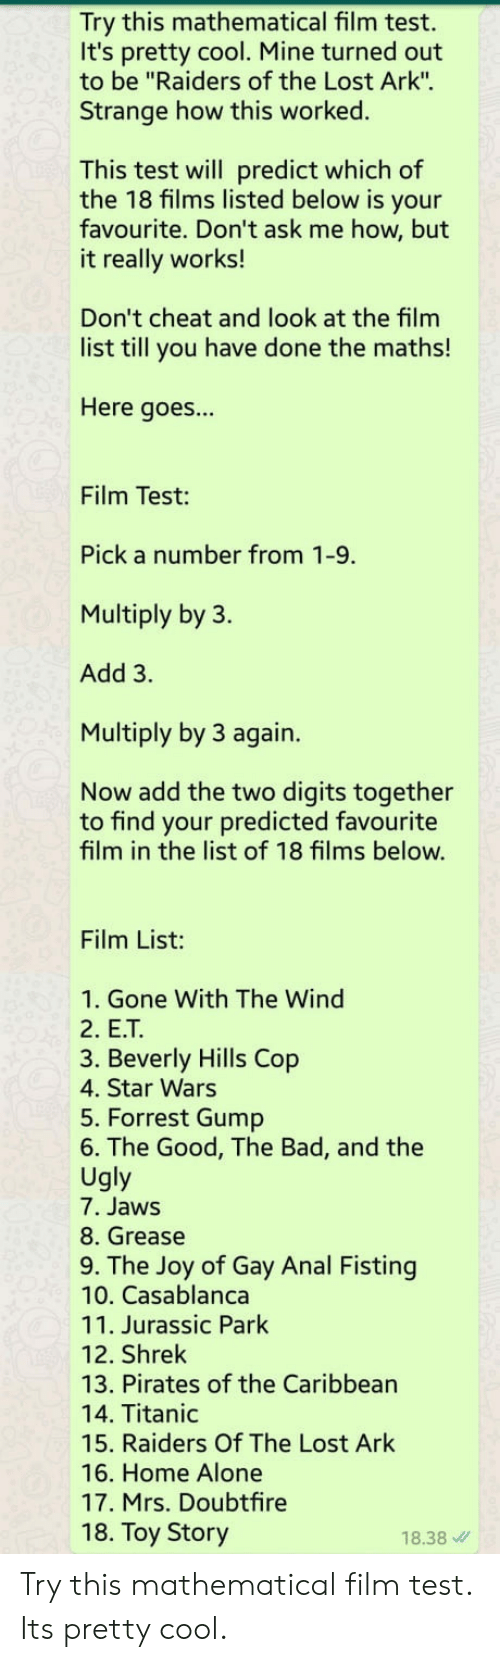 "Forrest Gump: Try this mathematical film test.  It's pretty cool. Mine turned out  to be ""Raiders of the Lost Ark"".  Strange how this worked.  This test will predict which of  the 18 films listed below is your  favourite. Don't ask me how, but  it really works!  Don't cheat and look at the film  list till you have done the maths!  Here goes...  Film Test:  Pick a number from 1-9.  Multiply by 3.  Add 3.  Multiply by 3 again.  Now add the two digits together  to find your predicted favourite  film in the list of 18 films below.  Film List:  1. Gone With The Wind  2. E.T  3. Beverly Hills Cop  4. Star Wars  5. Forrest Gump  6. The Good, The Bad, and the  Ugly  7. Jaws  8. Grease  9. The Joy of Gay Anal Fisting  10. Casablanca  11. Jurassic Park  12. Shrek  13. Pirates of the Caribbean  14. Titanic  15. Raiders Of The Lost Ark  16. Home Alone  17. Mrs. Doubtfire  18. Toy Story  18.38 Try this mathematical film test. Its pretty cool."